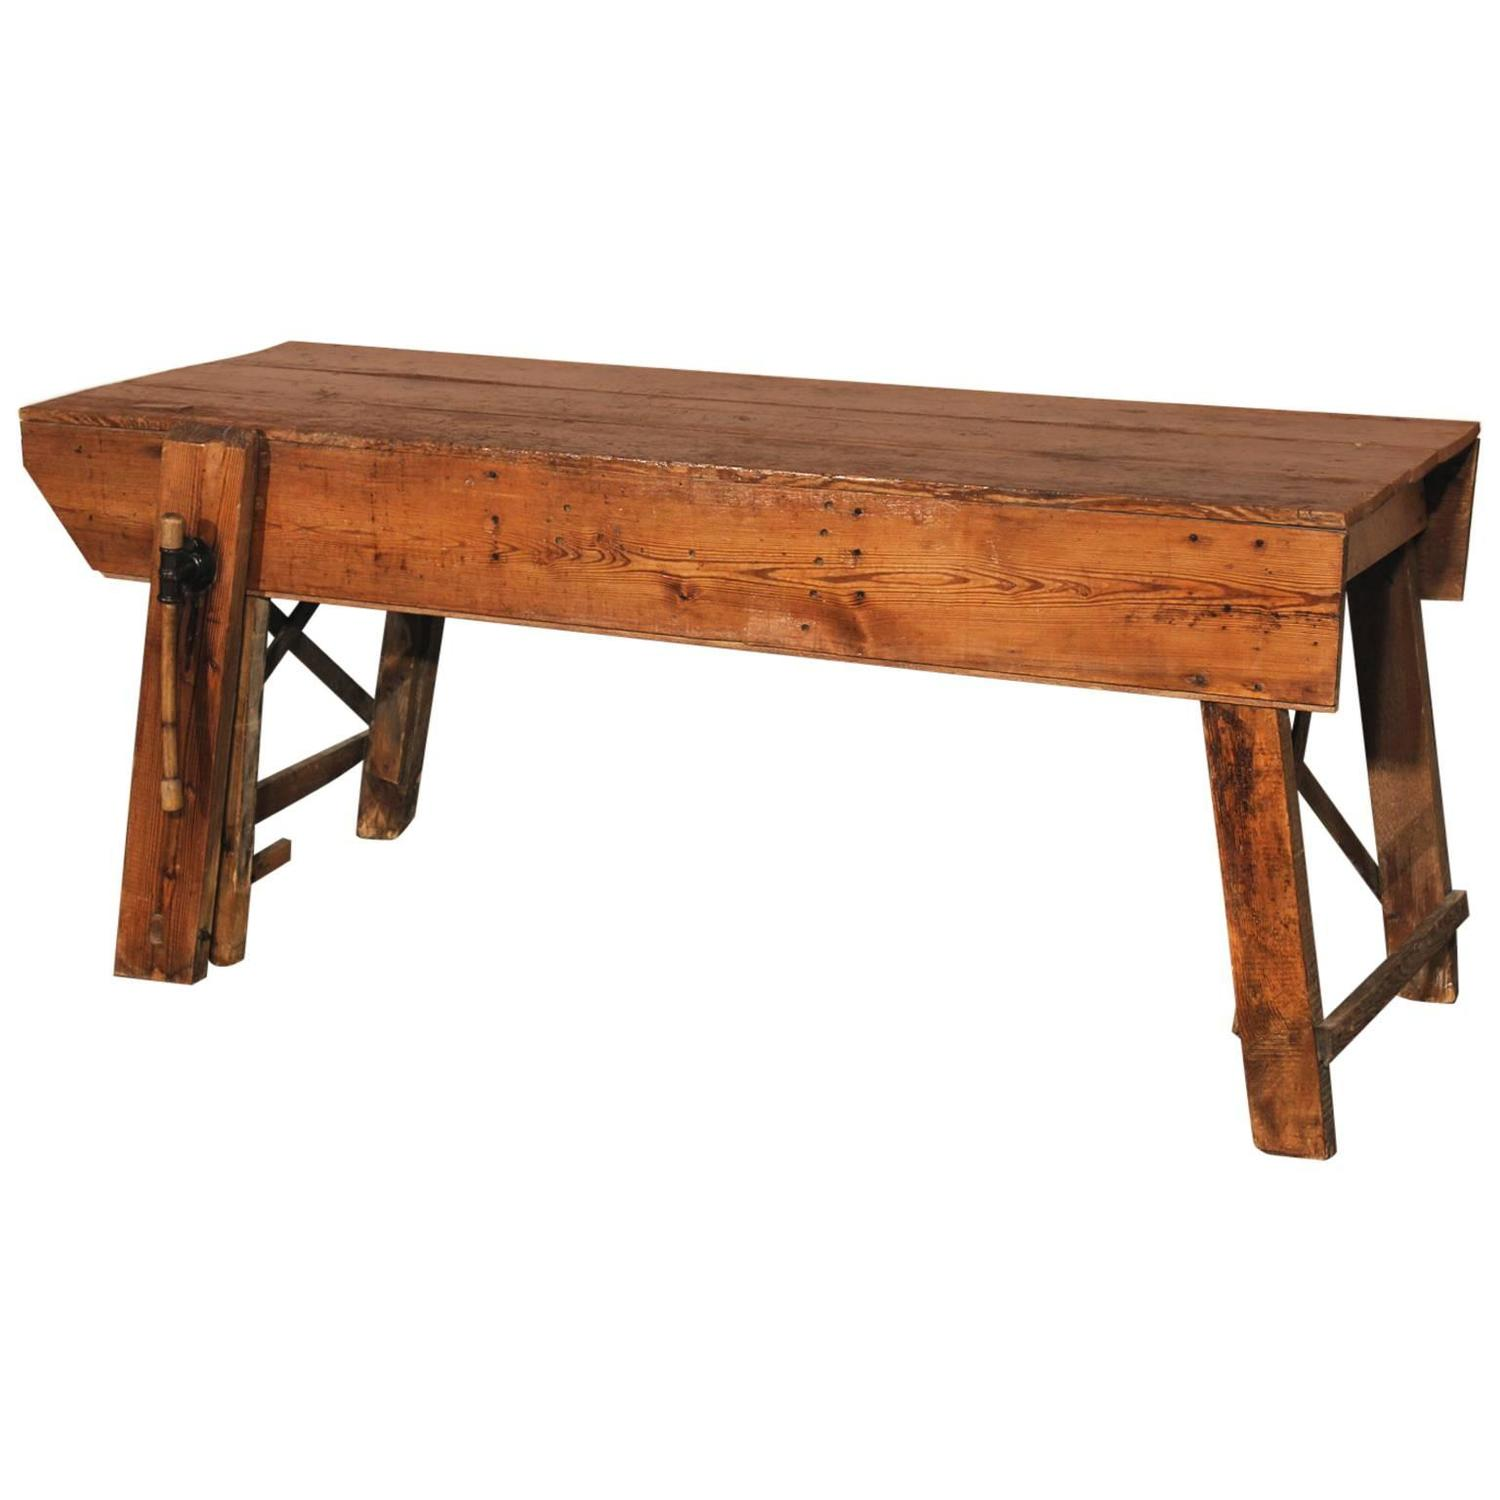 French Farmhouse Dining Table Large 19th Century French Rustic Pine Table Cleated 2 Plank